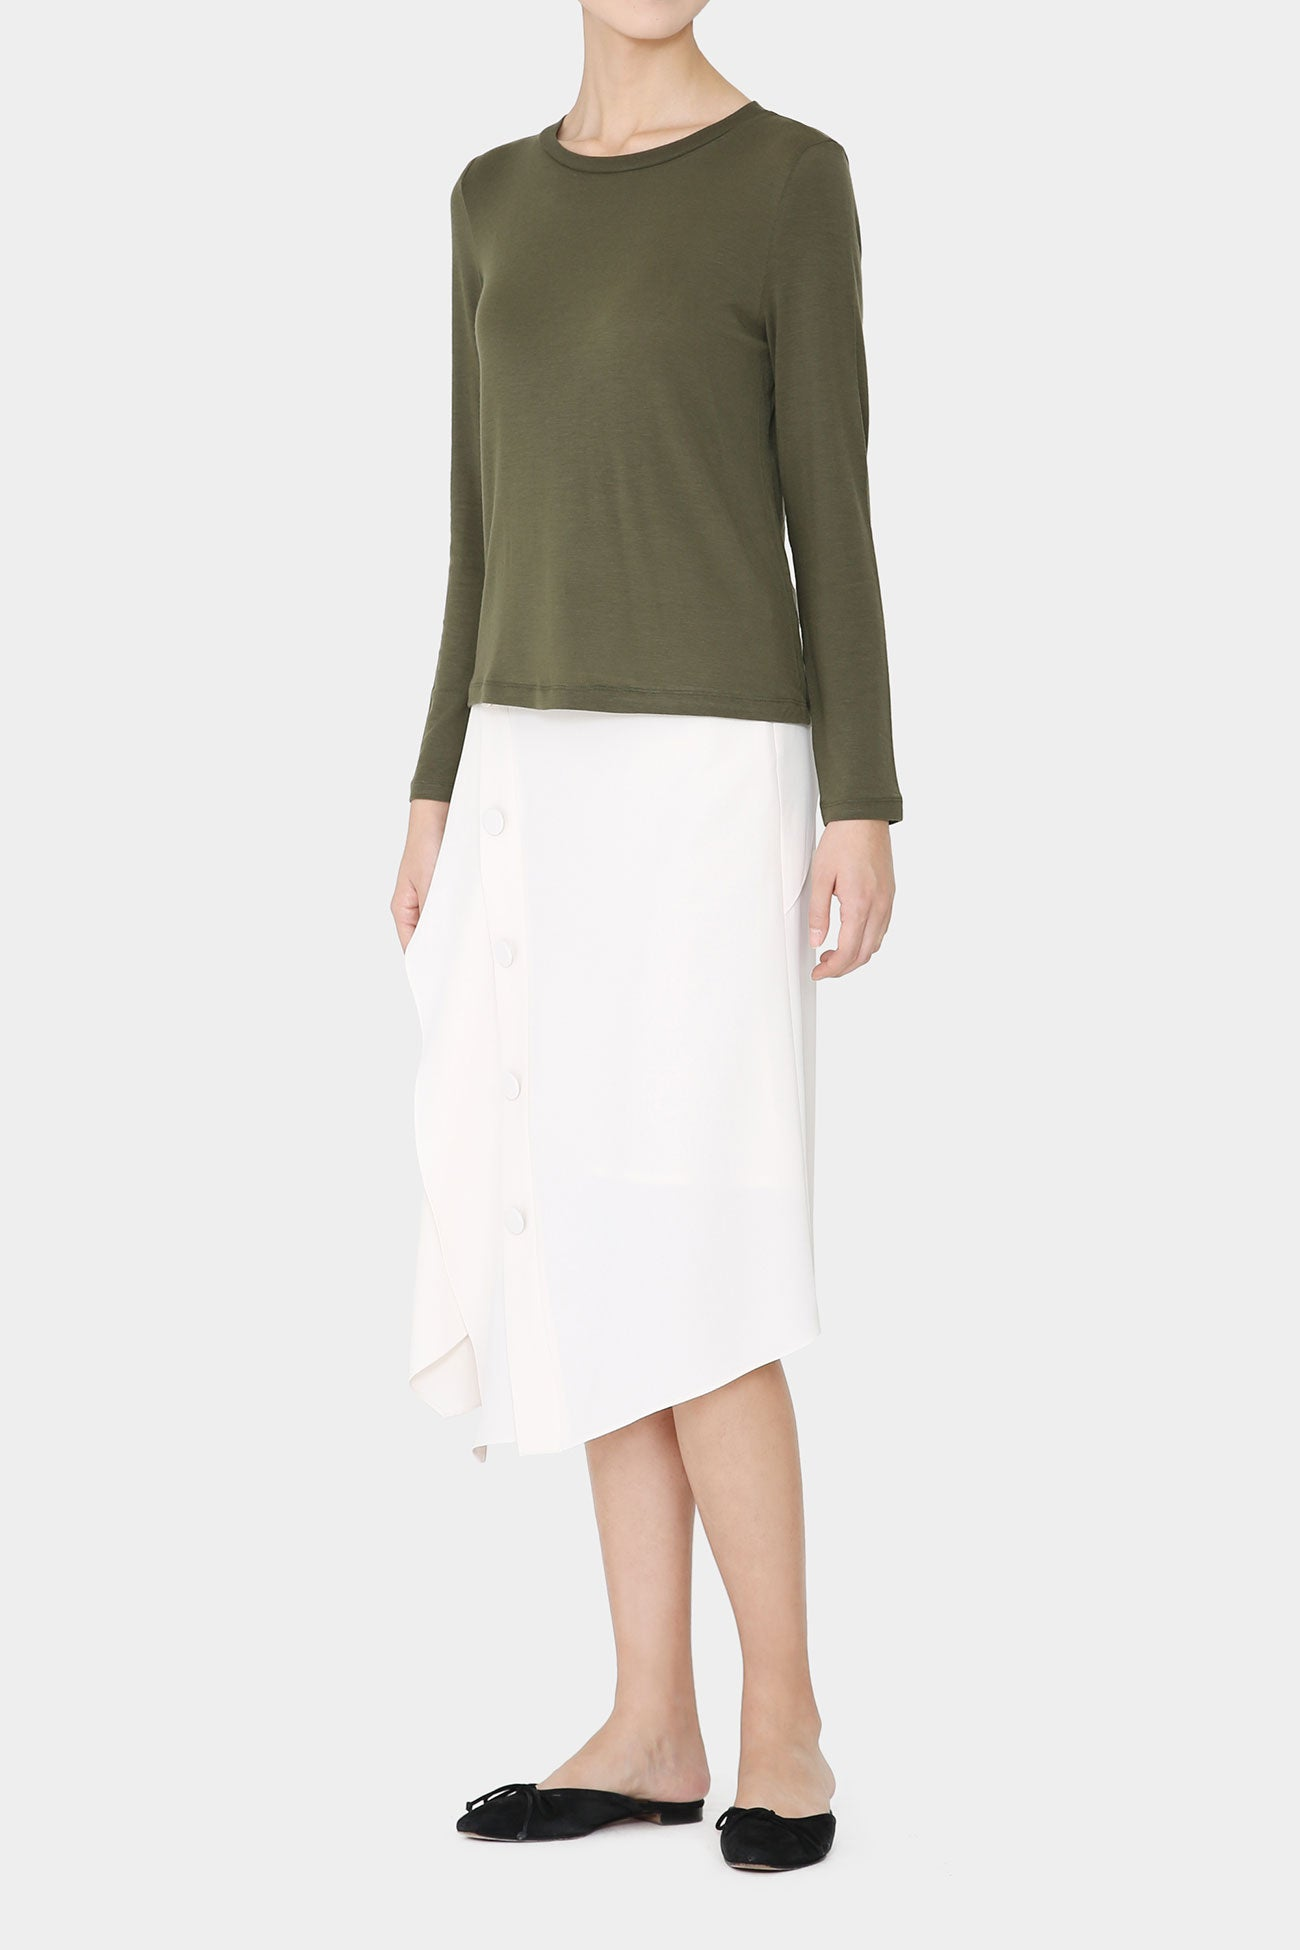 KHAKI FAY LIGHT WOOL T-SHIRT